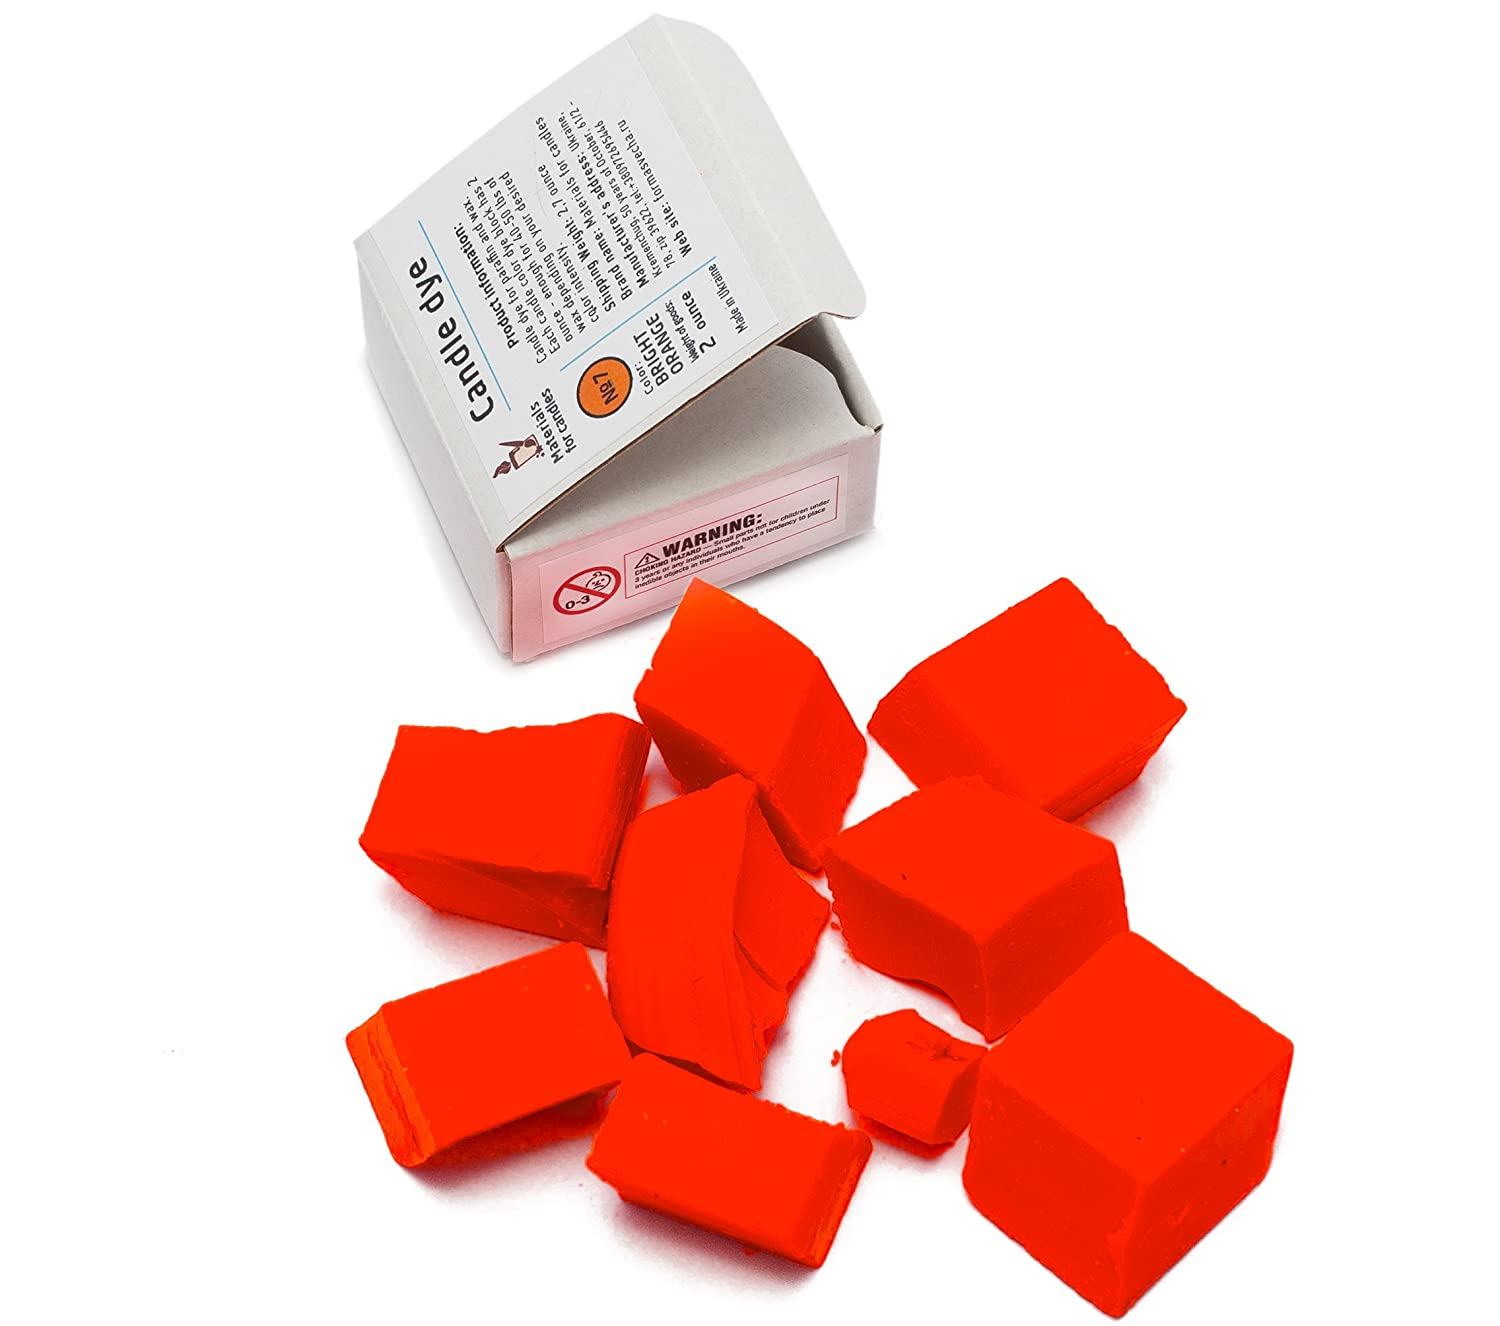 Candle Shop - Bright Orange Color Dye for 45 lb of wax - Candle dye chips  for making candles - Candle wax Dye